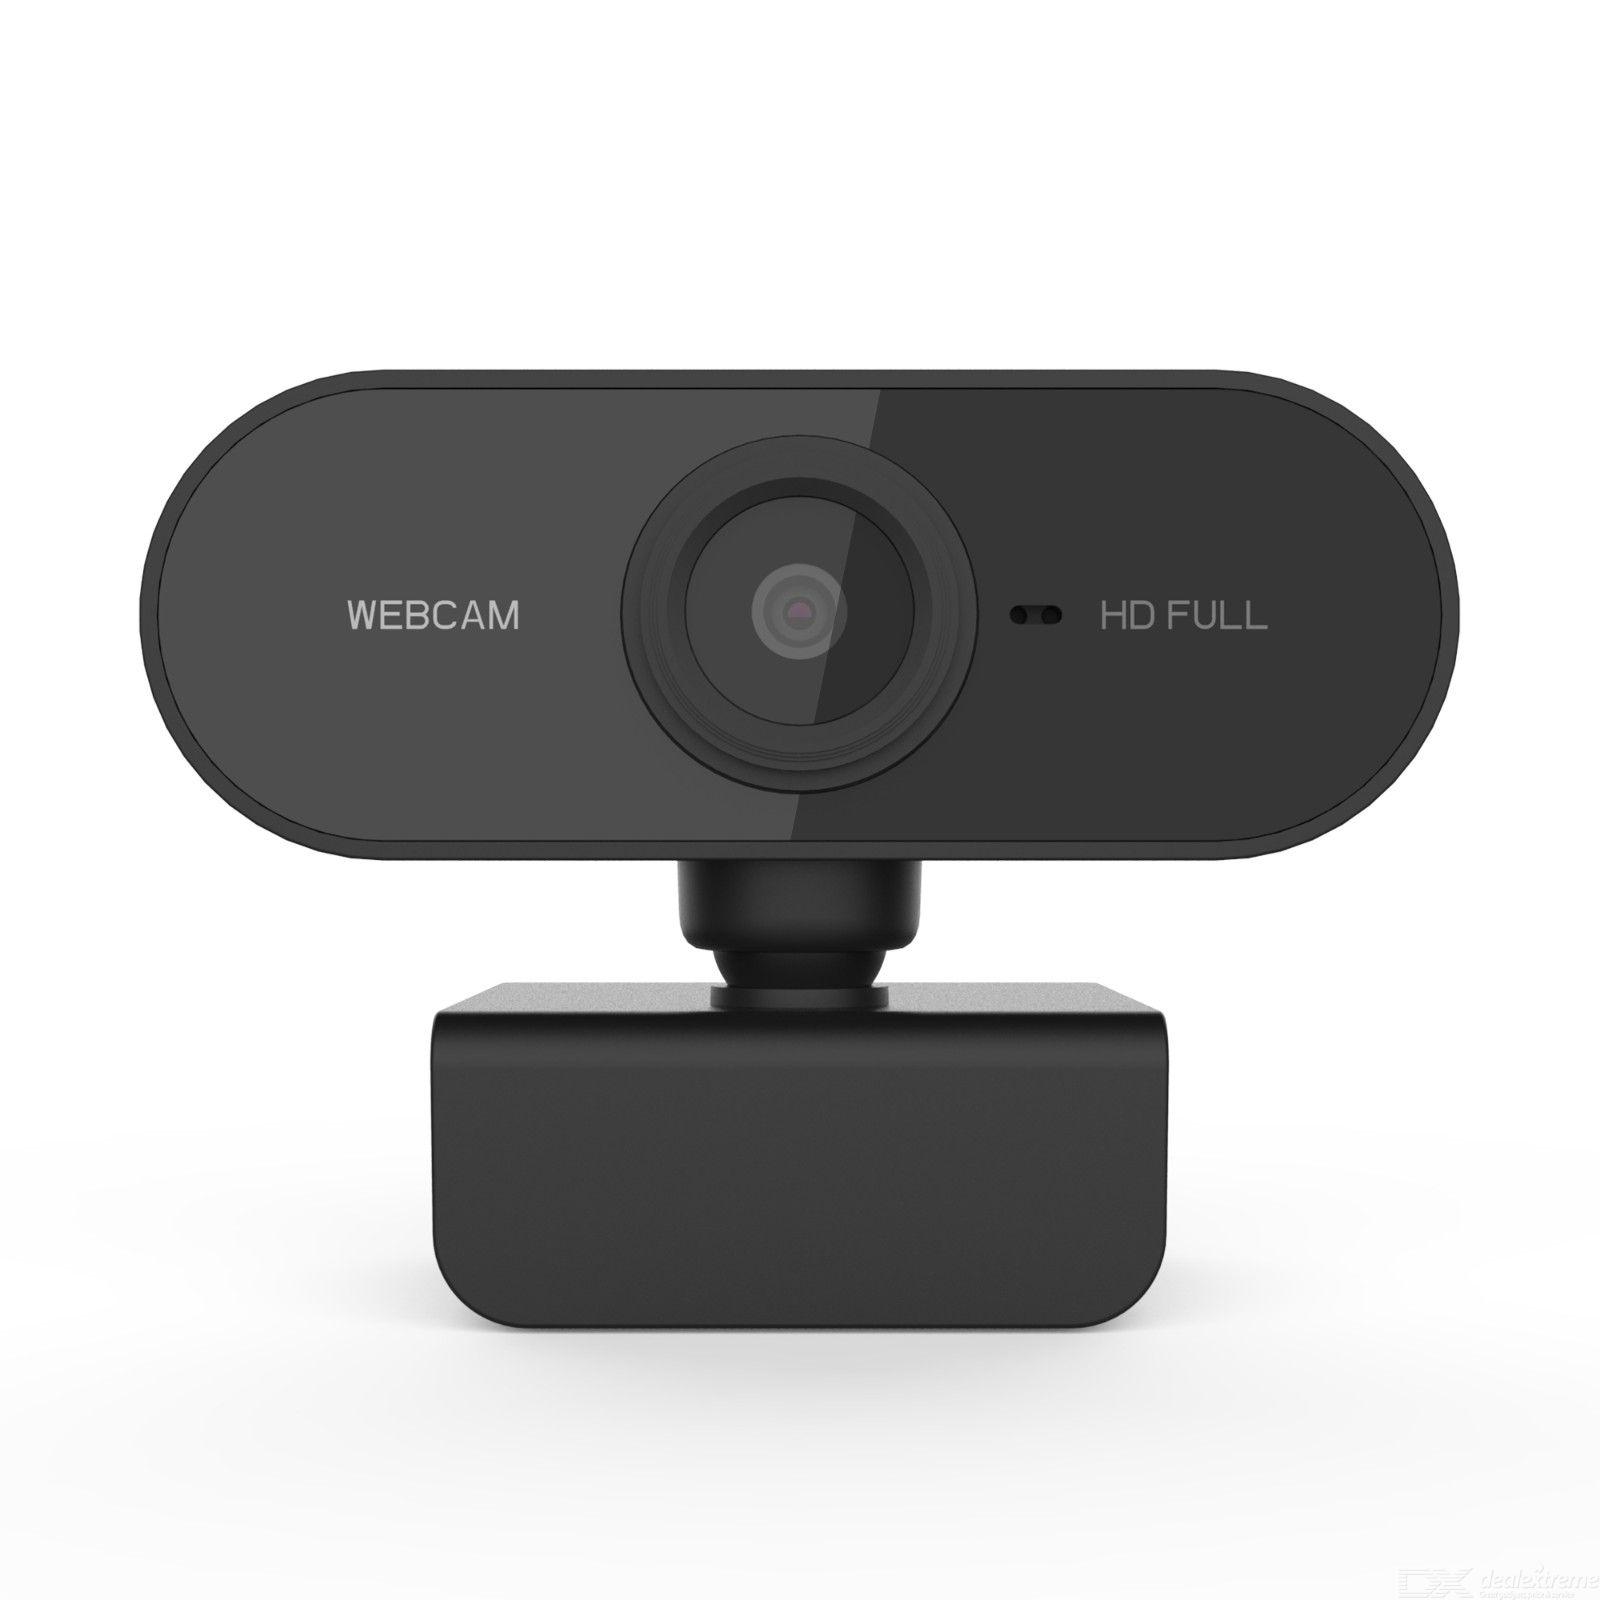 Webcam PC01 USB Full HD 1080P Video Camera Auto Focusing Webcam Meeting Video with Microphone Mini Computer Camera for PC Laptop